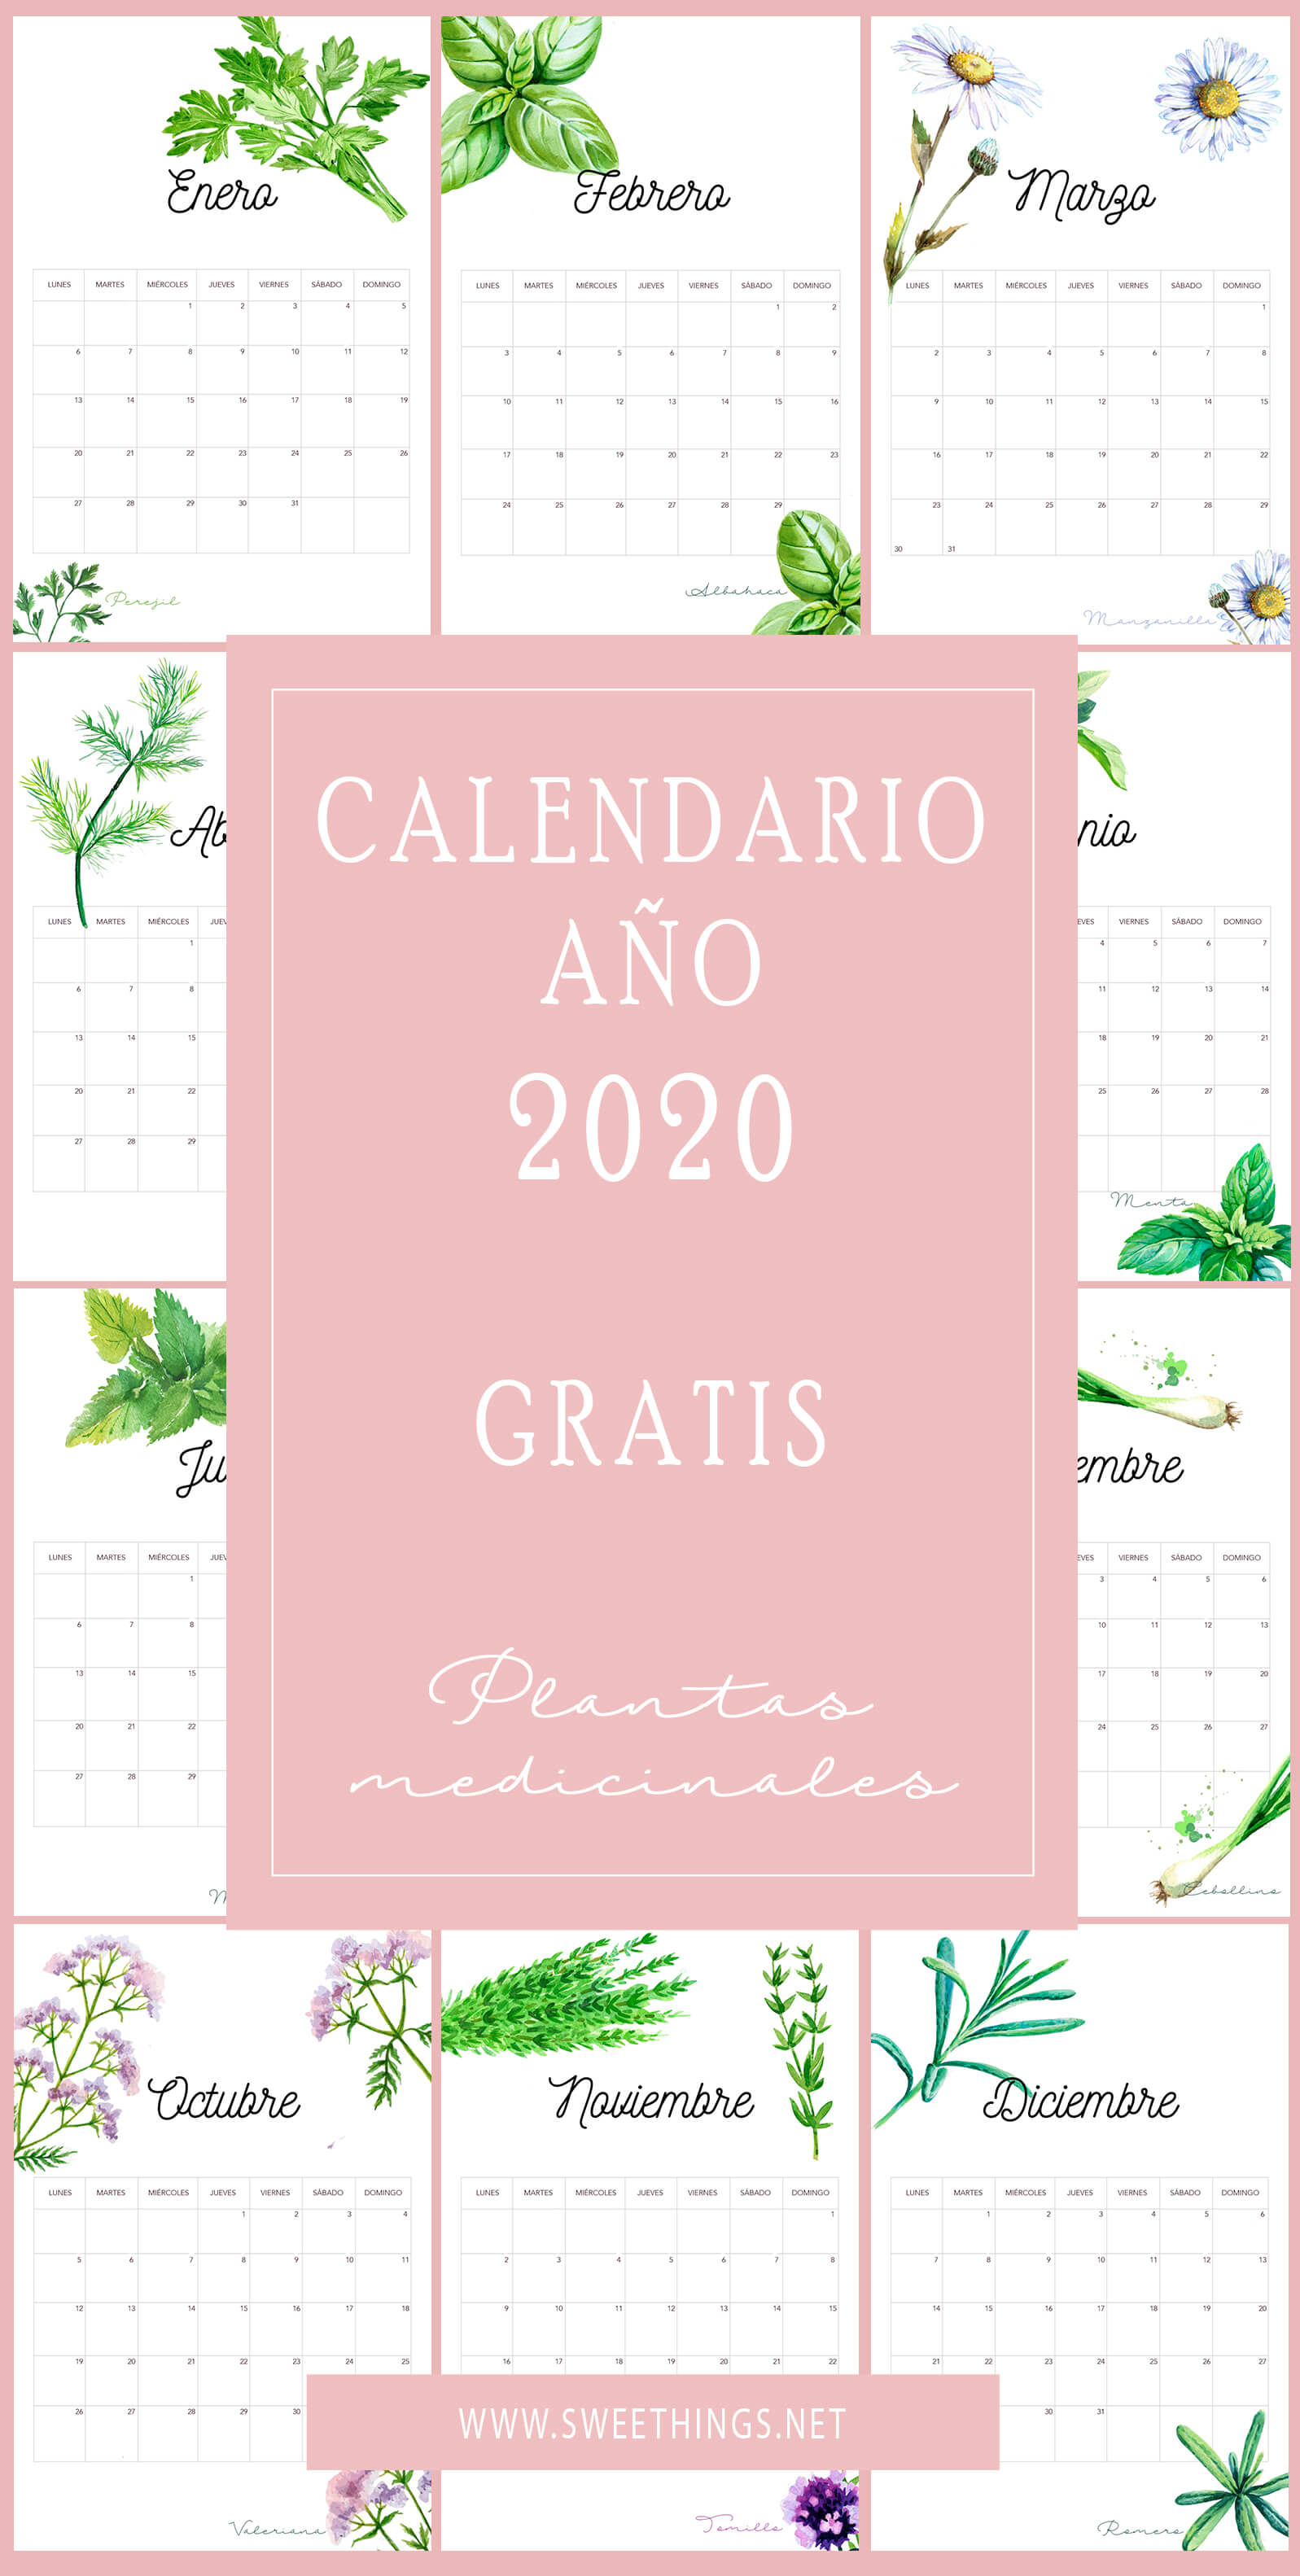 Calendario 2020 plantas gratis para descargar · Via www.sweethings.net